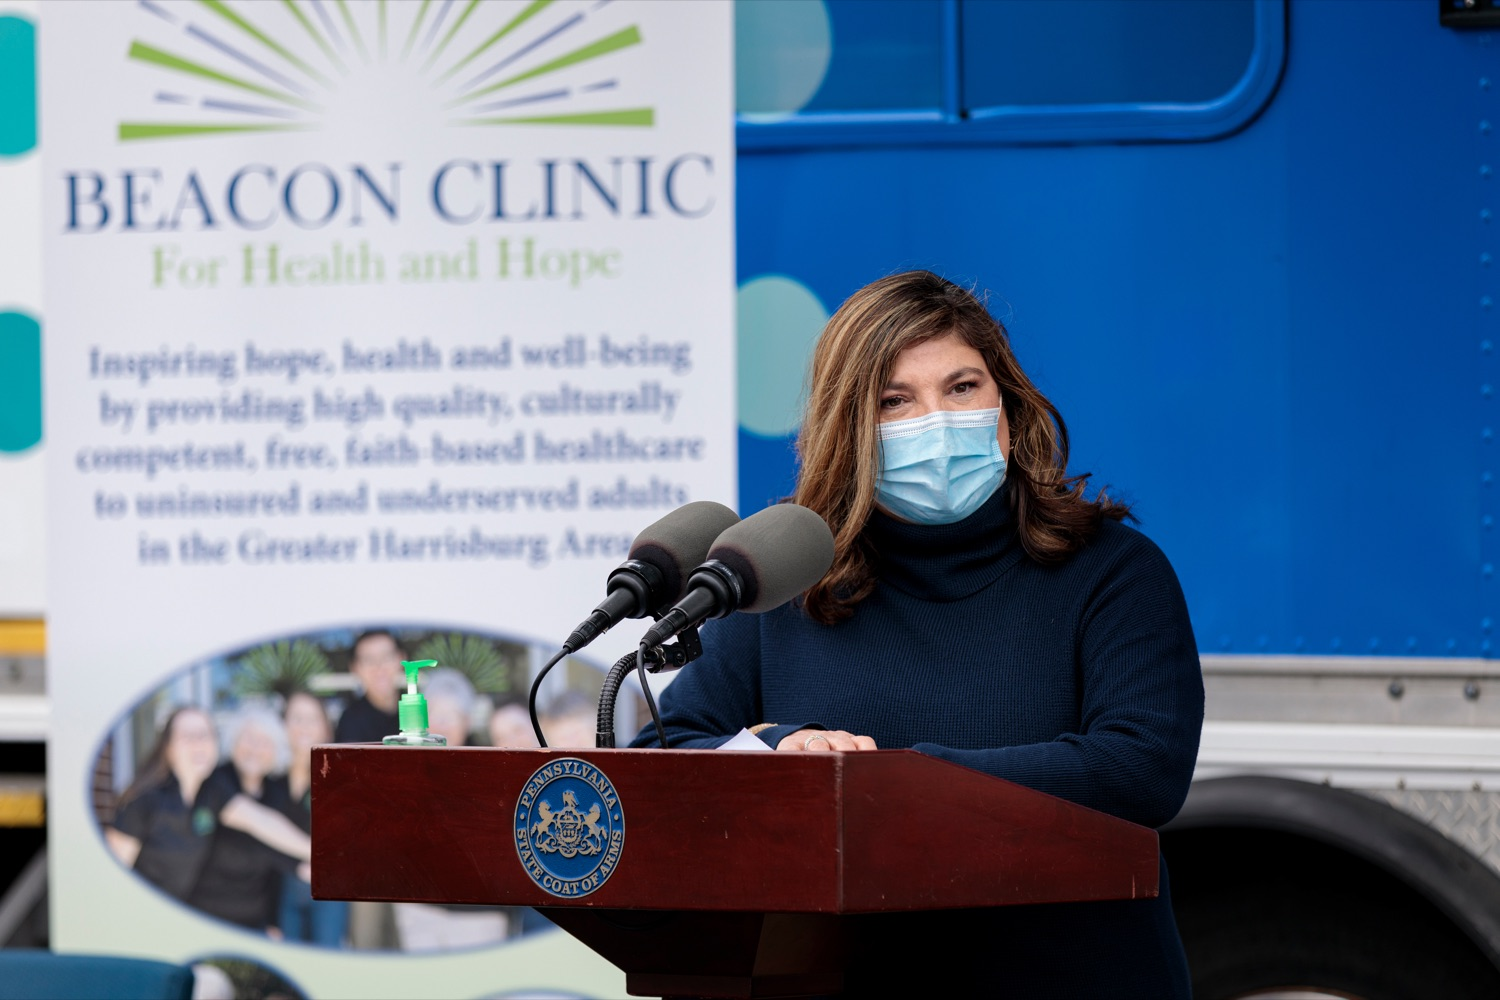 """<a href=""""https://filesource.wostreaming.net/commonwealthofpa/photo/18675_DOH_Beacon_Clinic_NK_009.jpg"""" target=""""_blank"""">⇣Download Photo<br></a>Highmark Blue Shield Medical Policy Research Analyst Dr. Oralia Dominic speaks during a press conference, which discussed an upcoming COVID-19 mobile response vaccination tour to provide vaccinations and education to minority and underserved communities across the commonwealth, outside of Beacon Clinic in Harrisburg on Monday, April 12, 2021."""